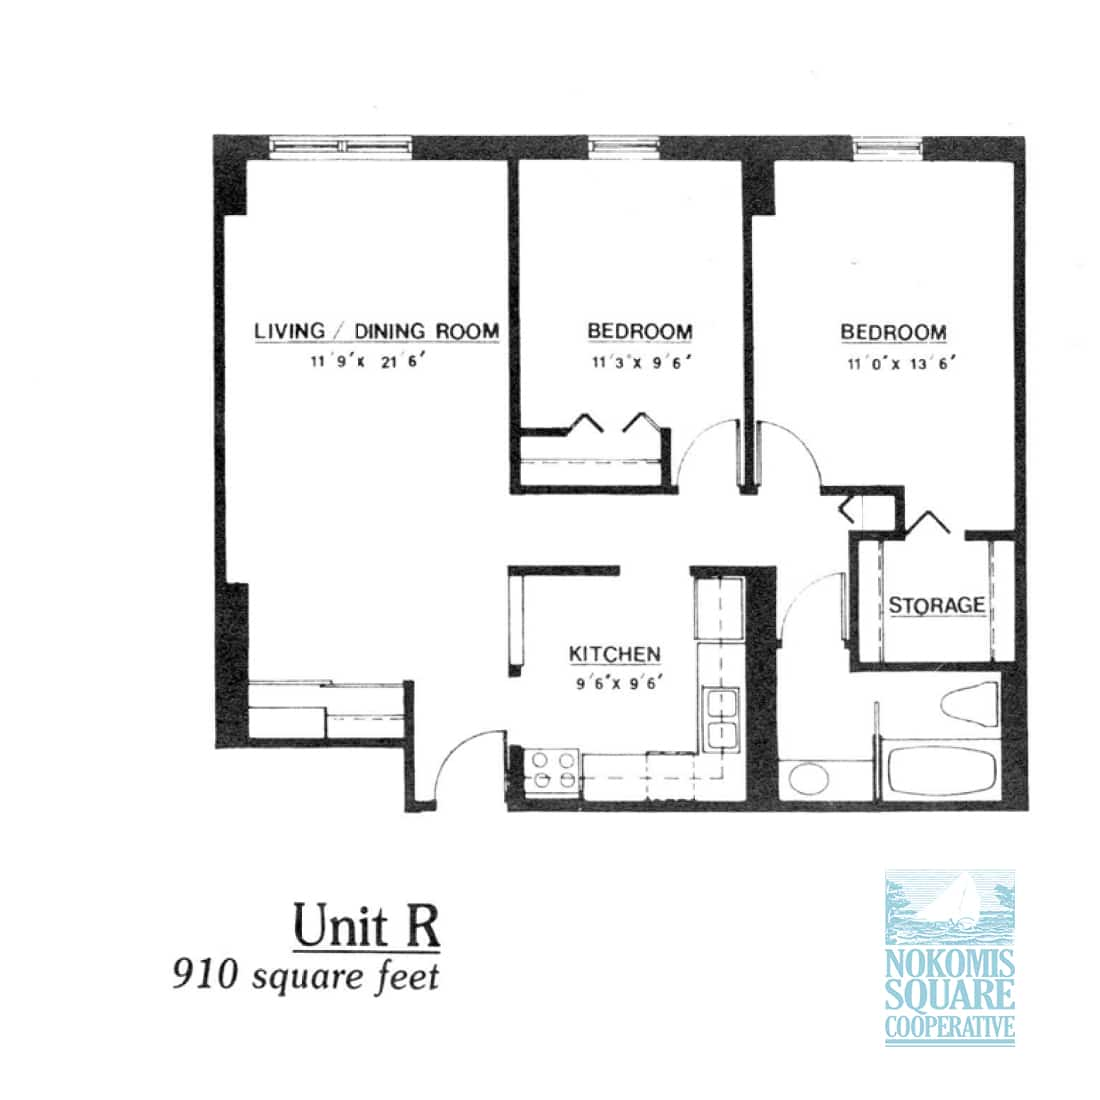 2 br Floorplan Unit R - Nokomis Square Senior Cooperative